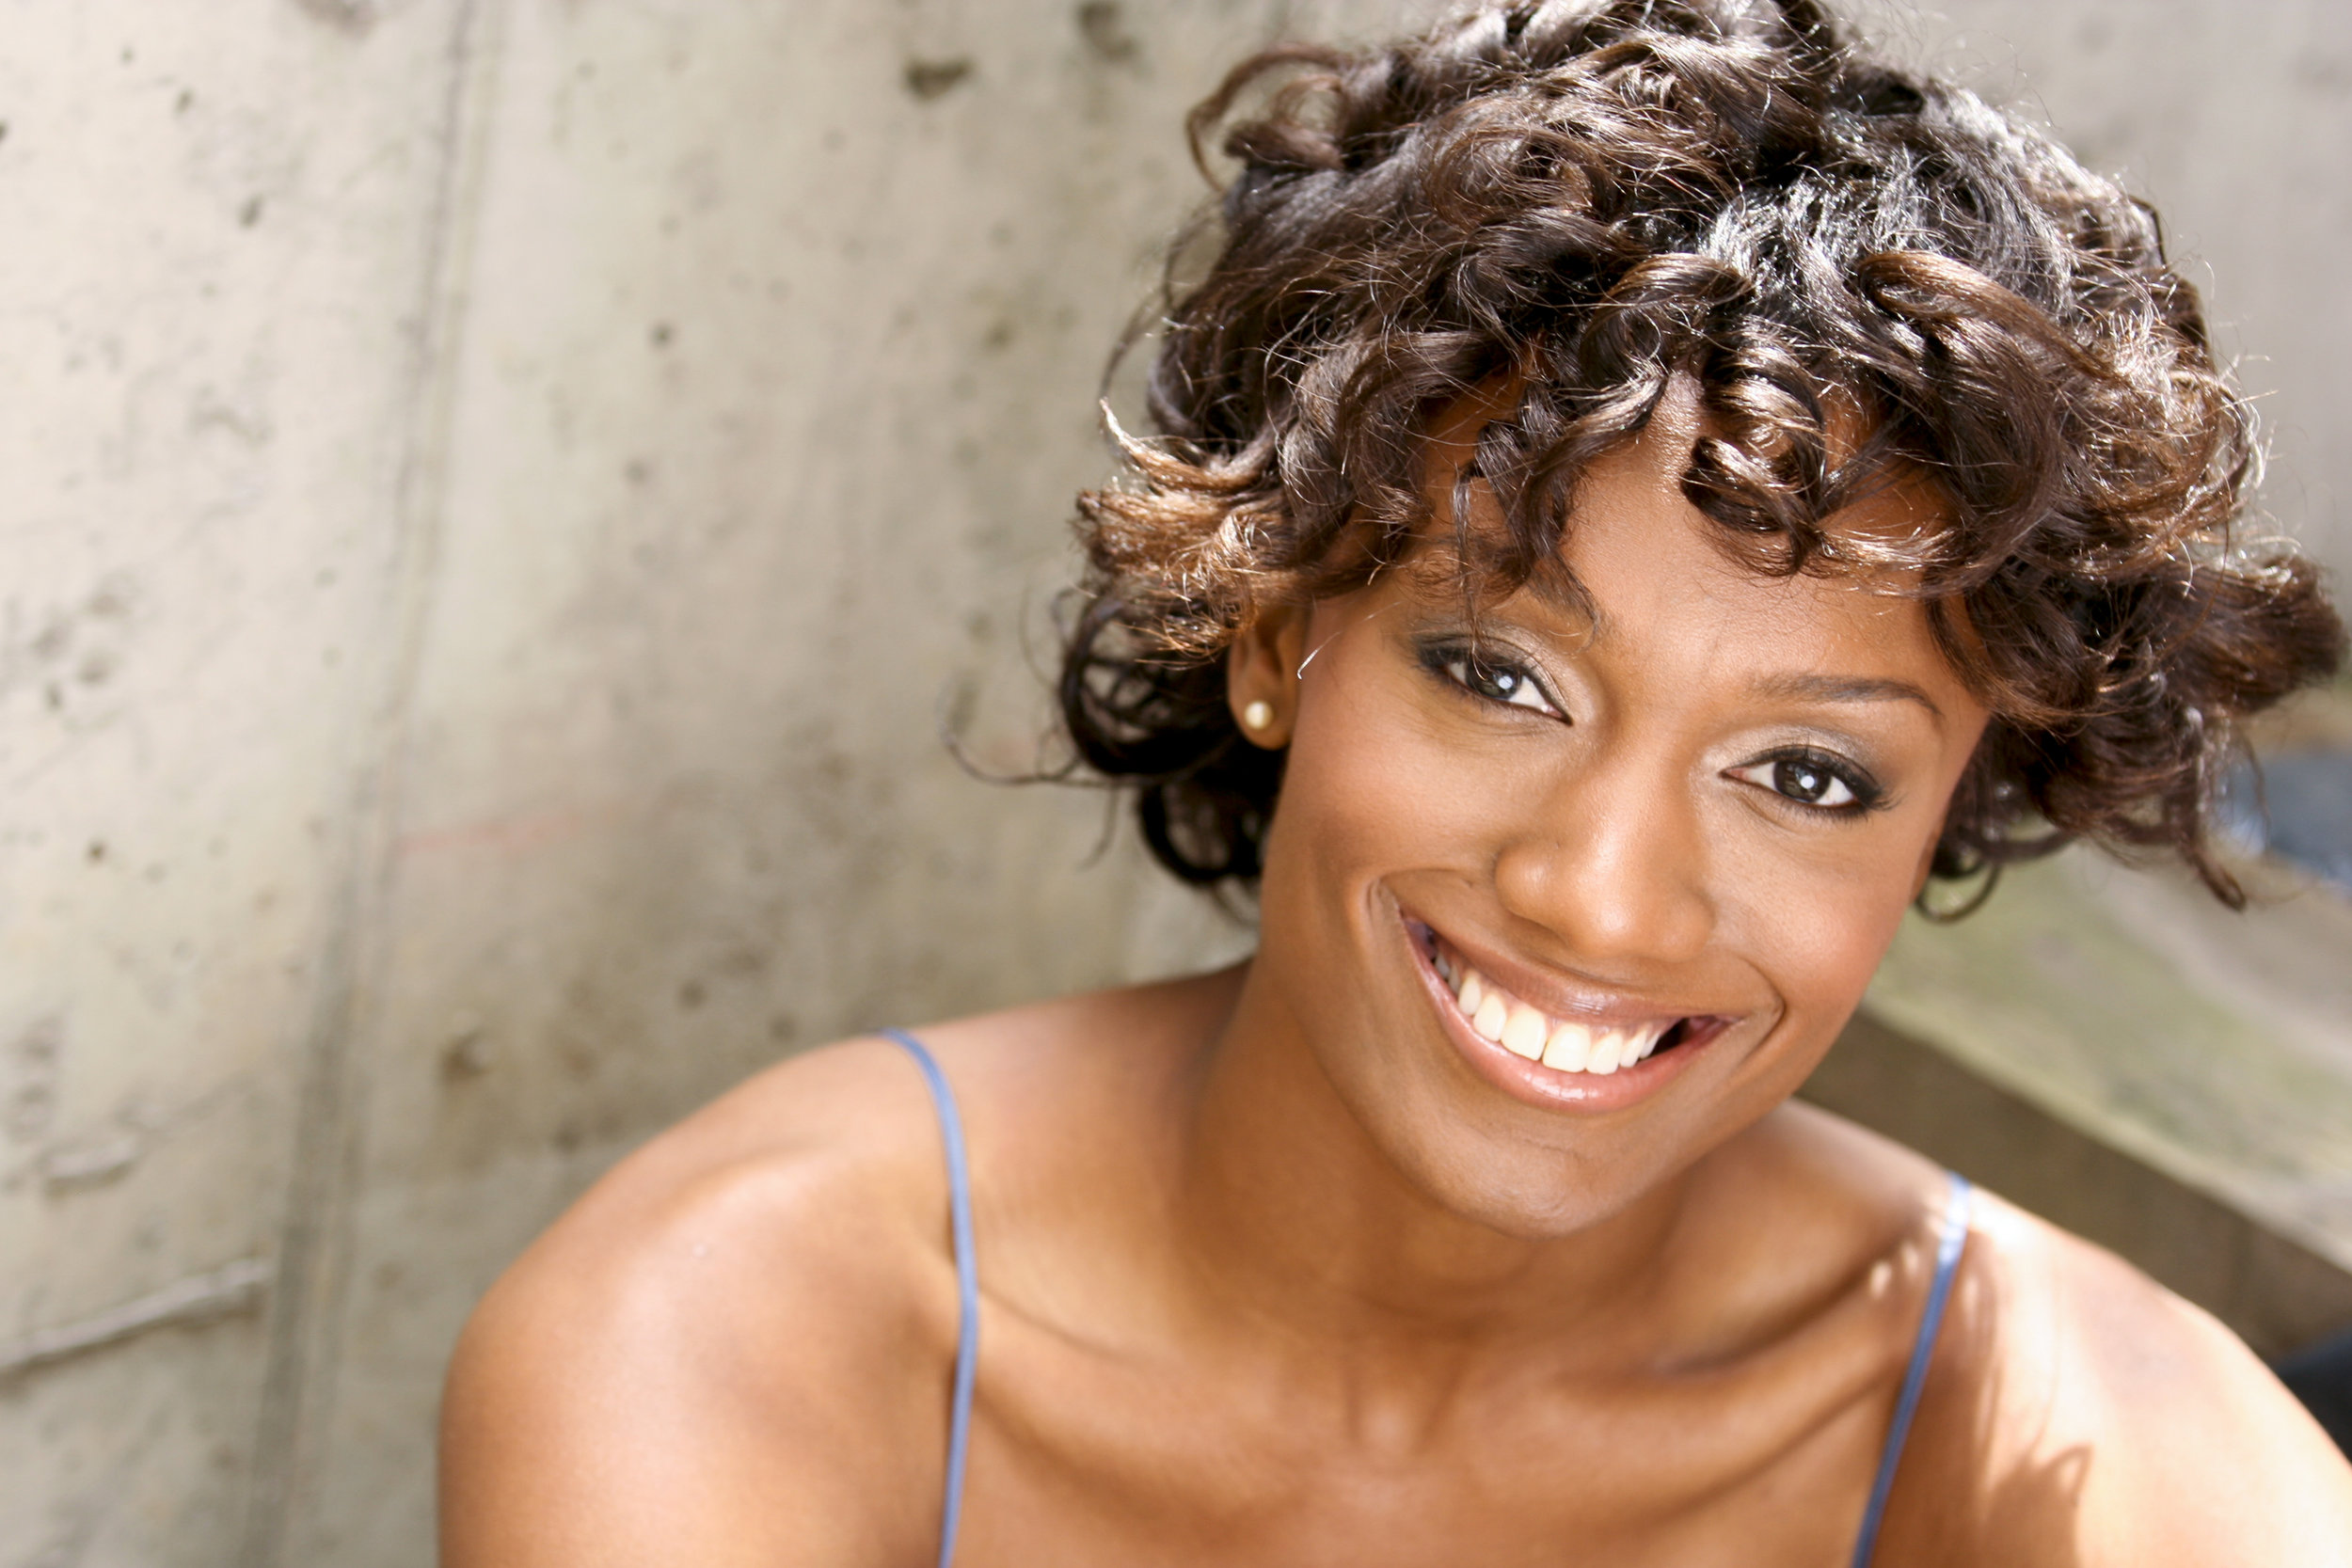 Shawn Mathis Gooden plays Althea